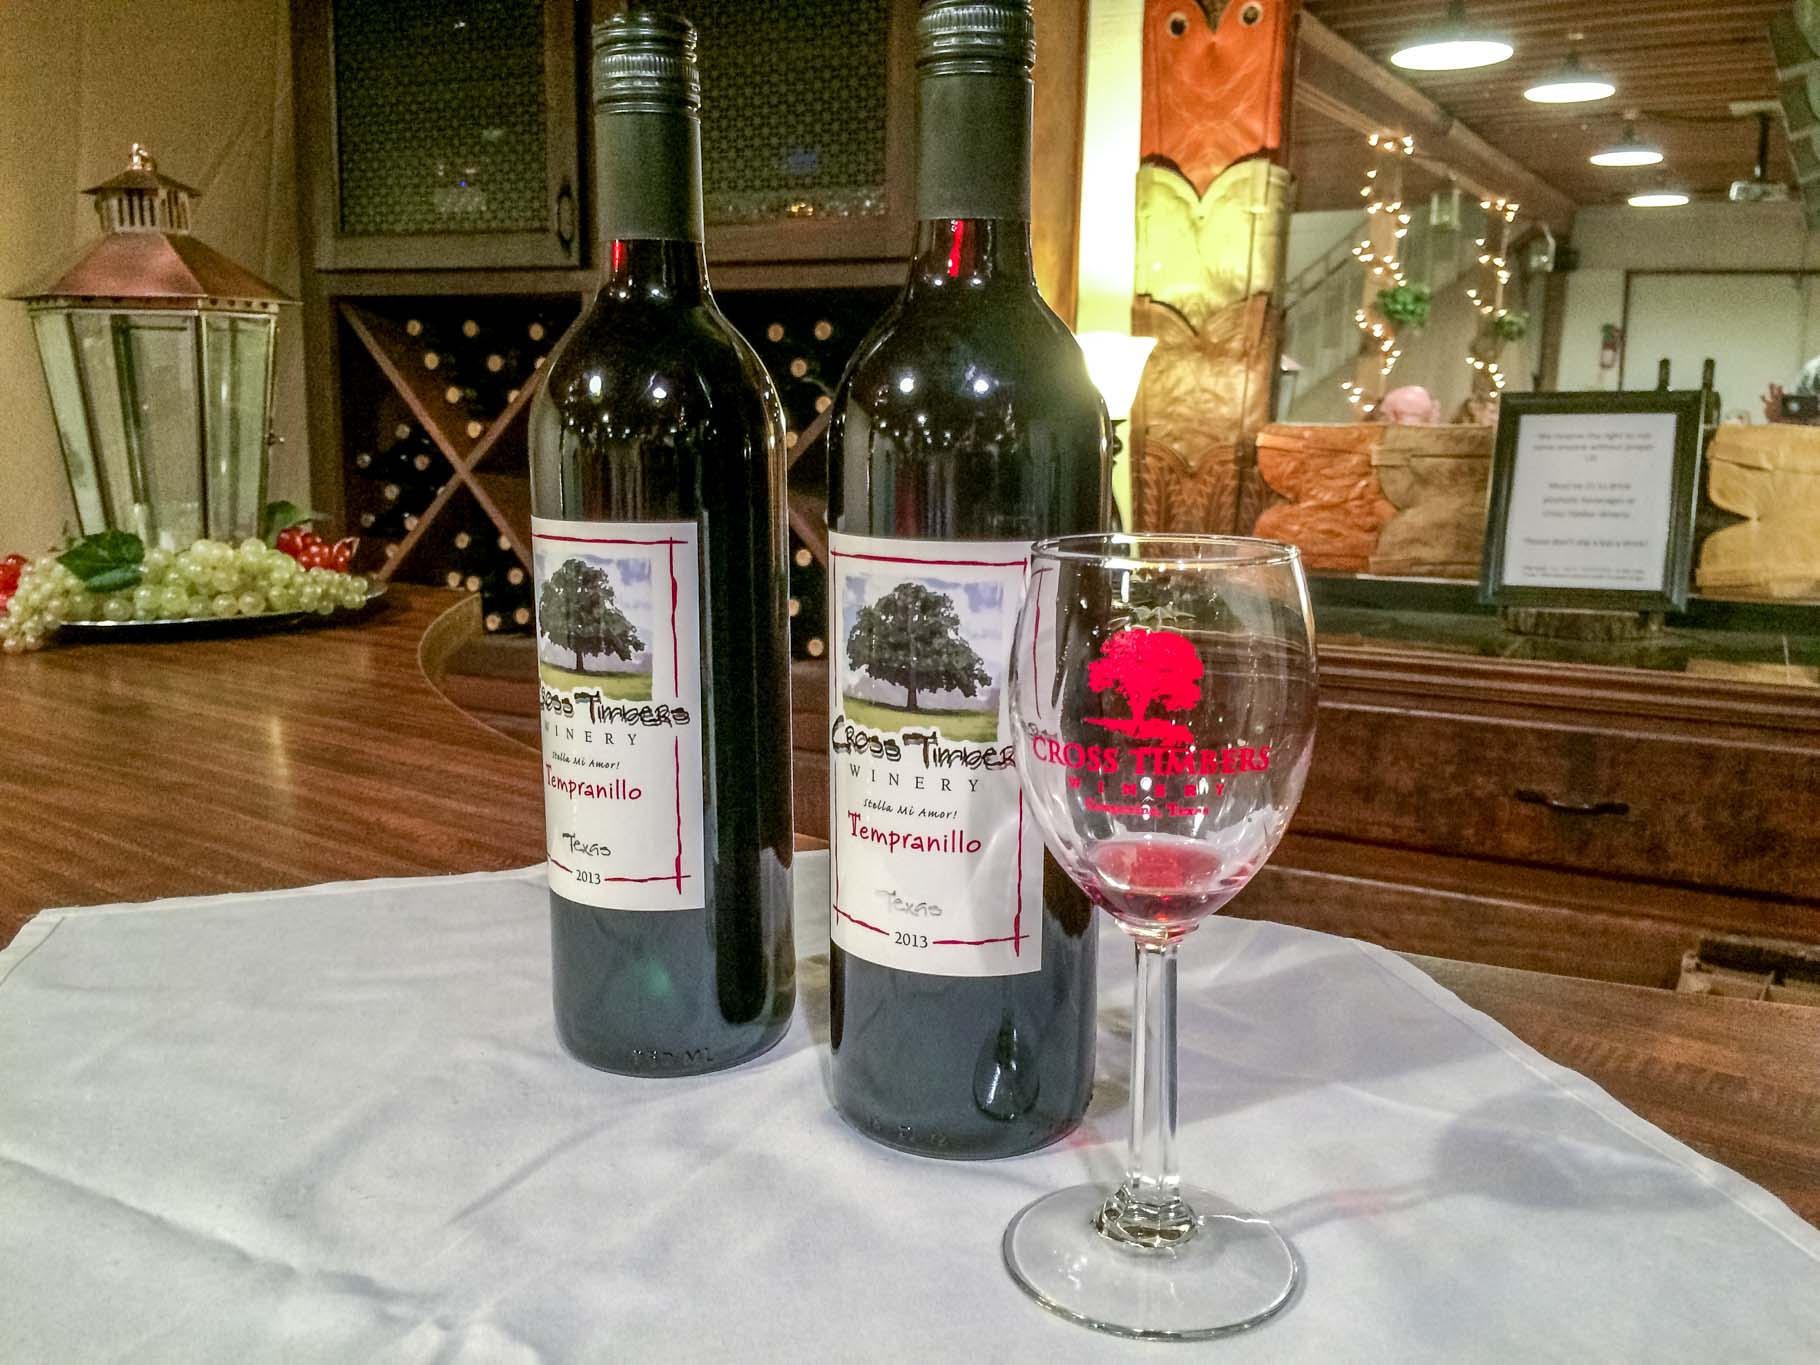 Cross Timbers Winery in Grapevine, Texas